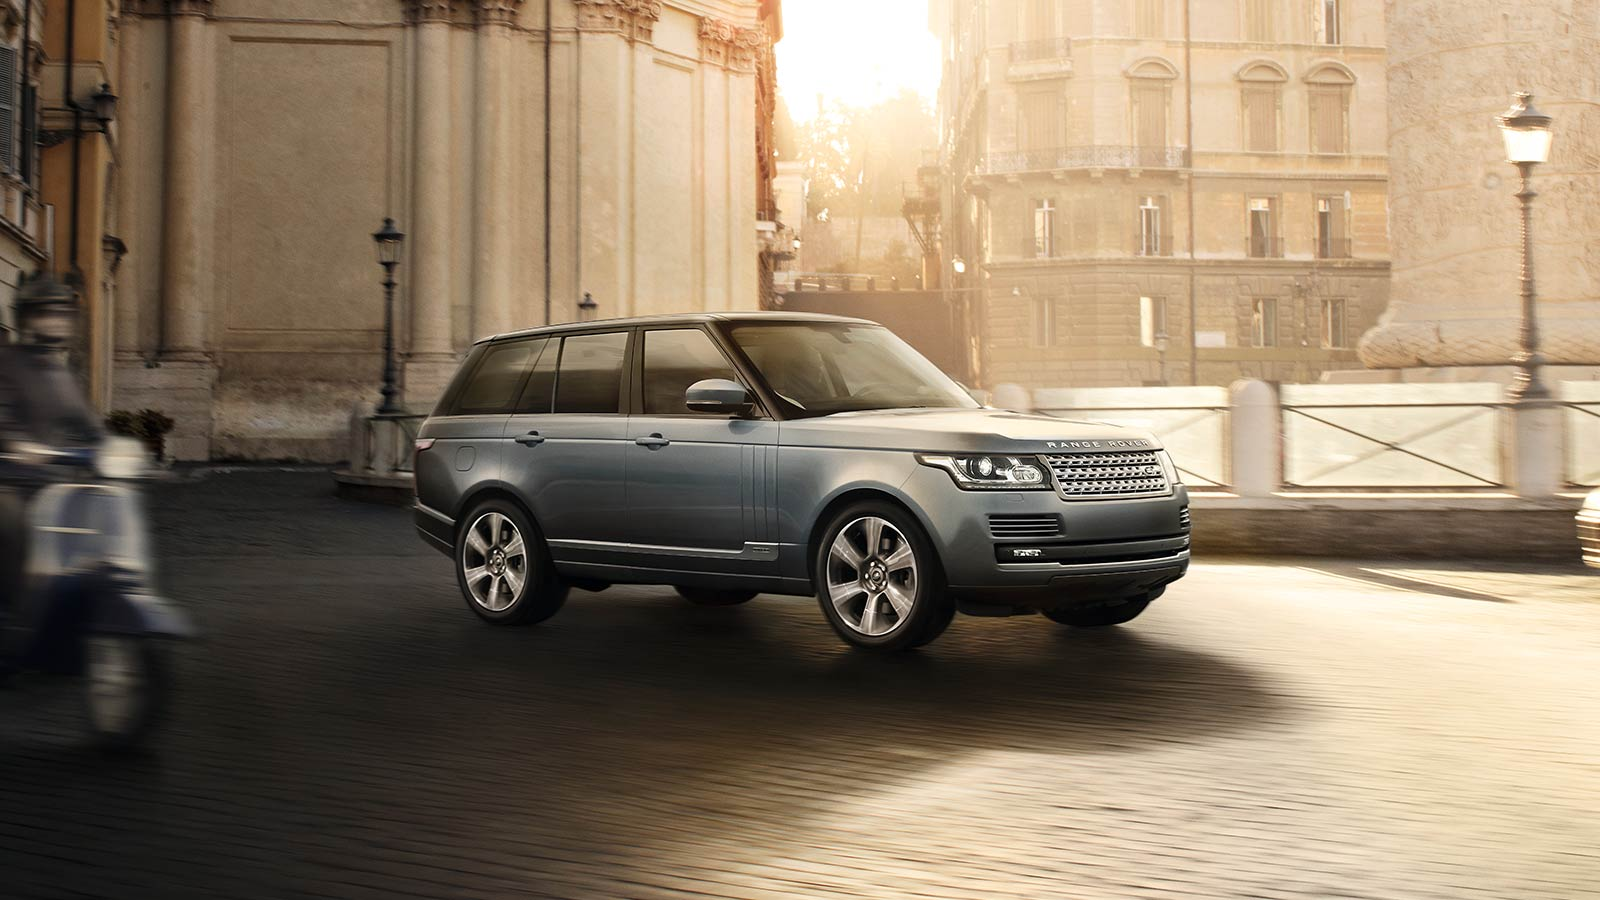 Range Rover for business offers